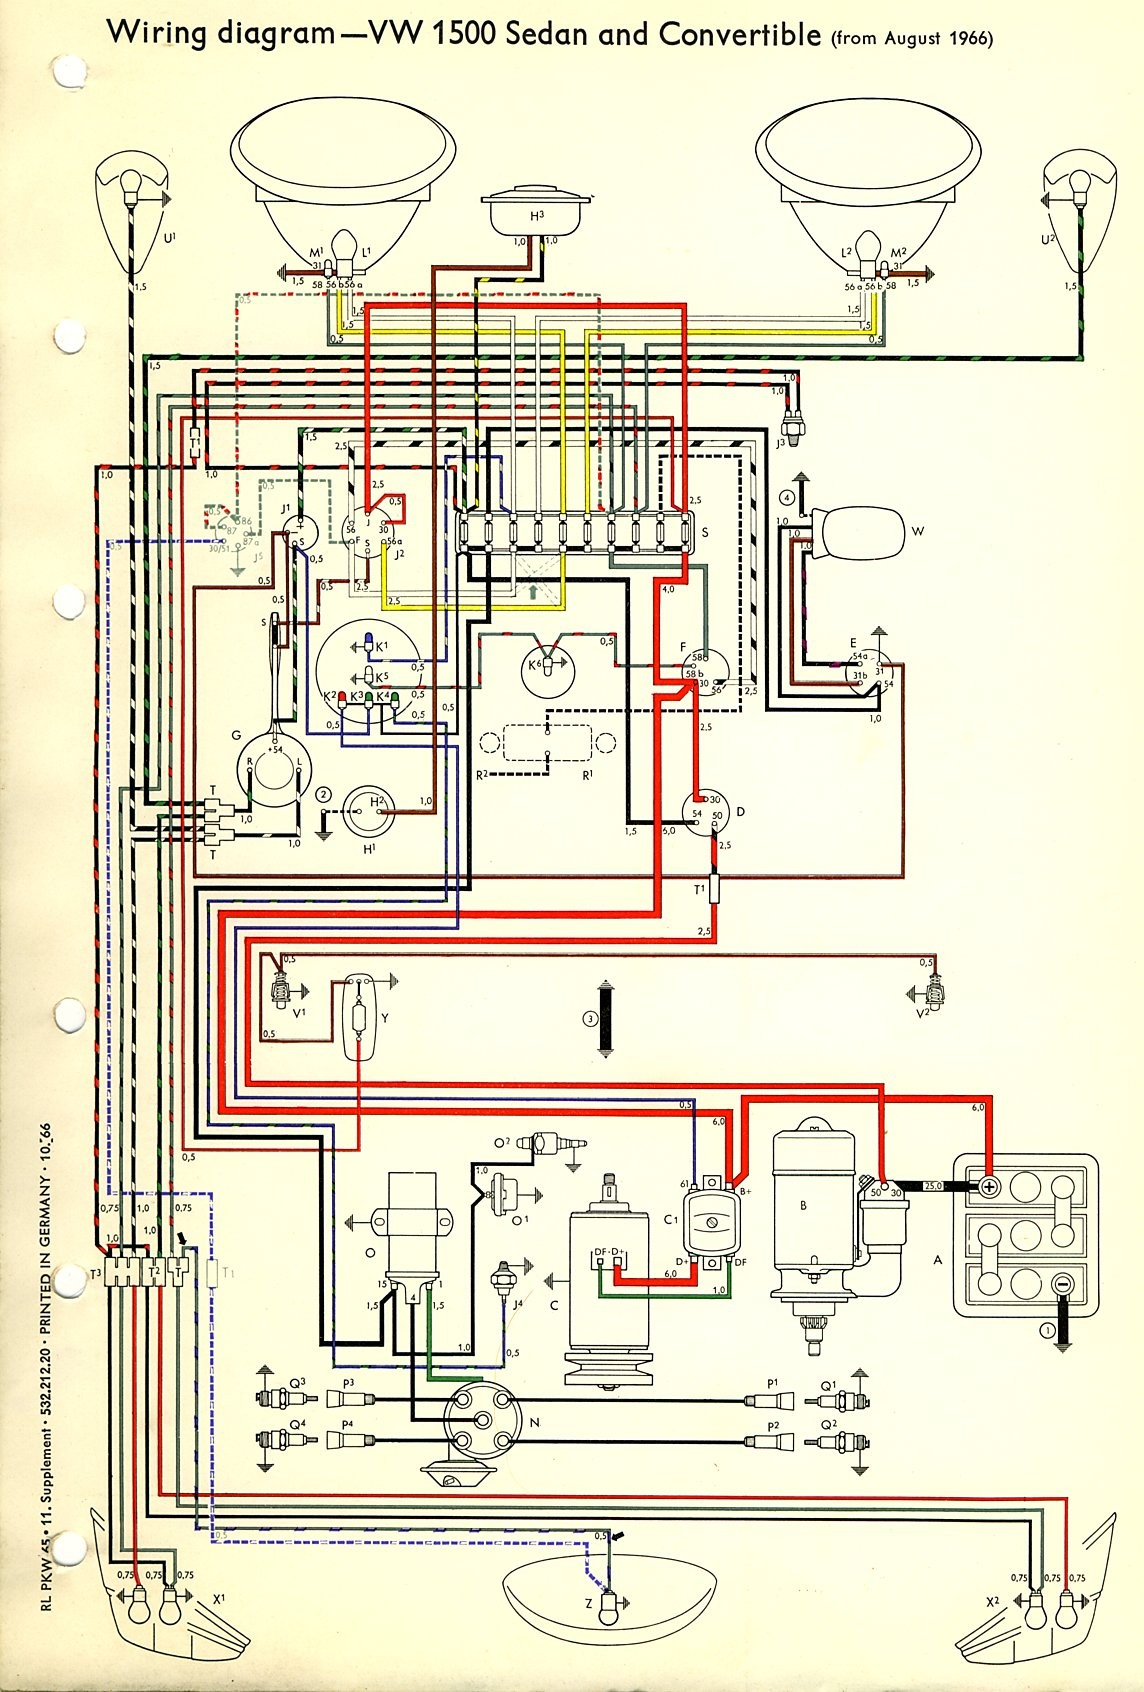 1973 vw beetle ignition coil wiring diagram 87 yamaha warrior 350 wire engine diagrams best site harness